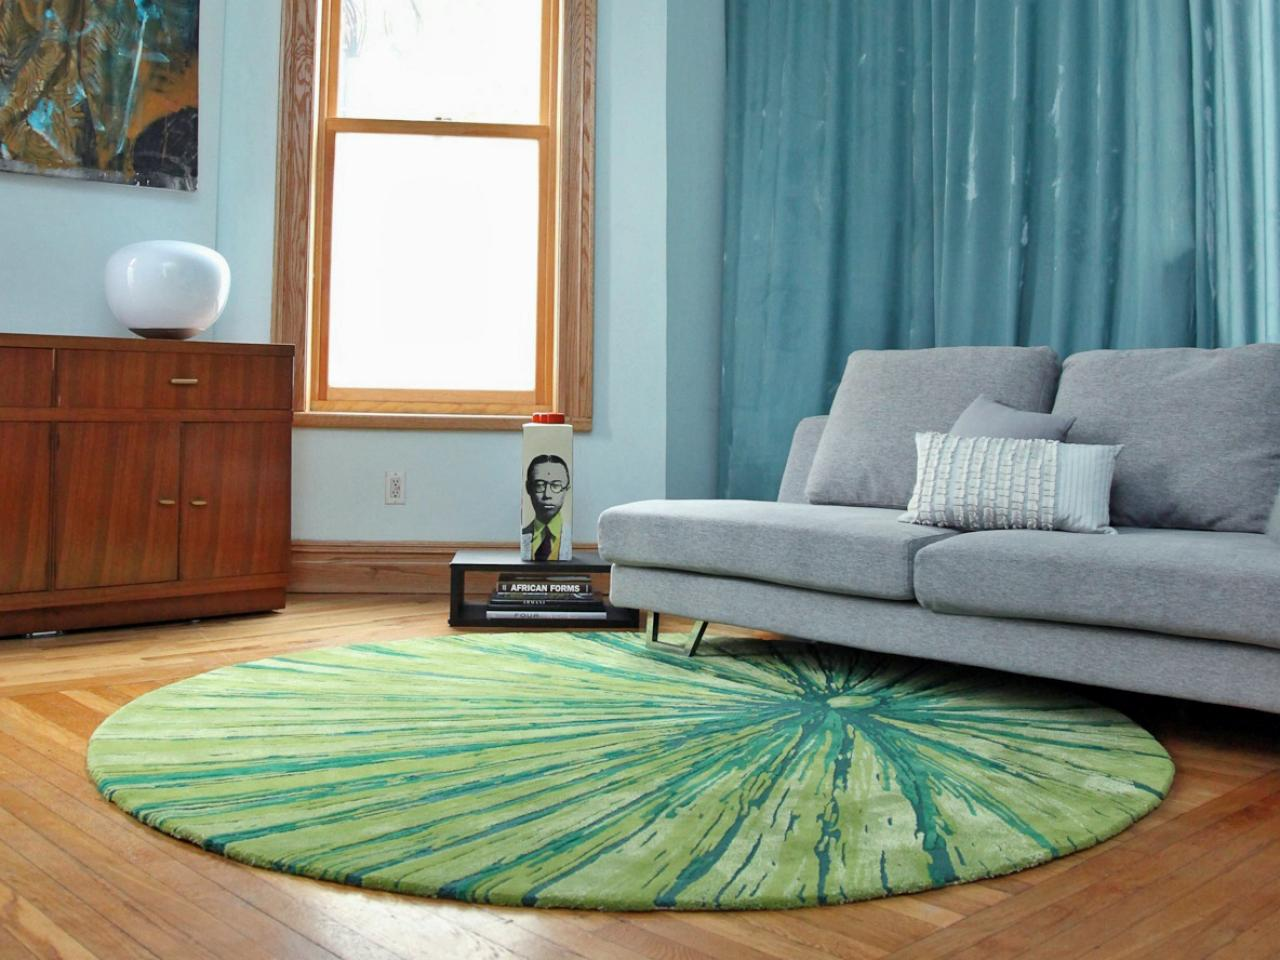 Choosing the Best Area Rug for Your Space | HGTV